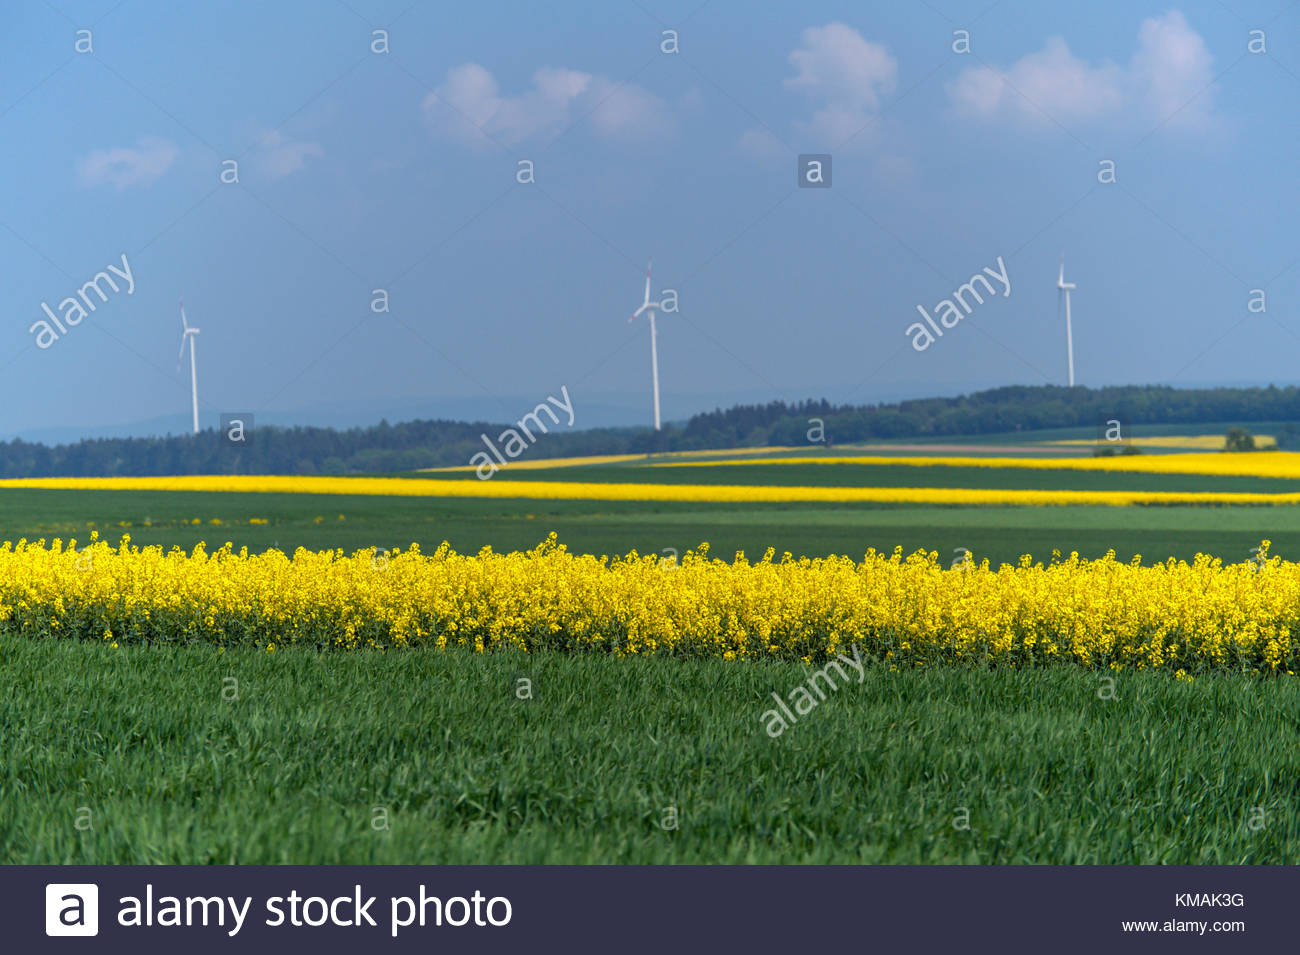 Clean energy windpower, and agriculture. - Stock Image